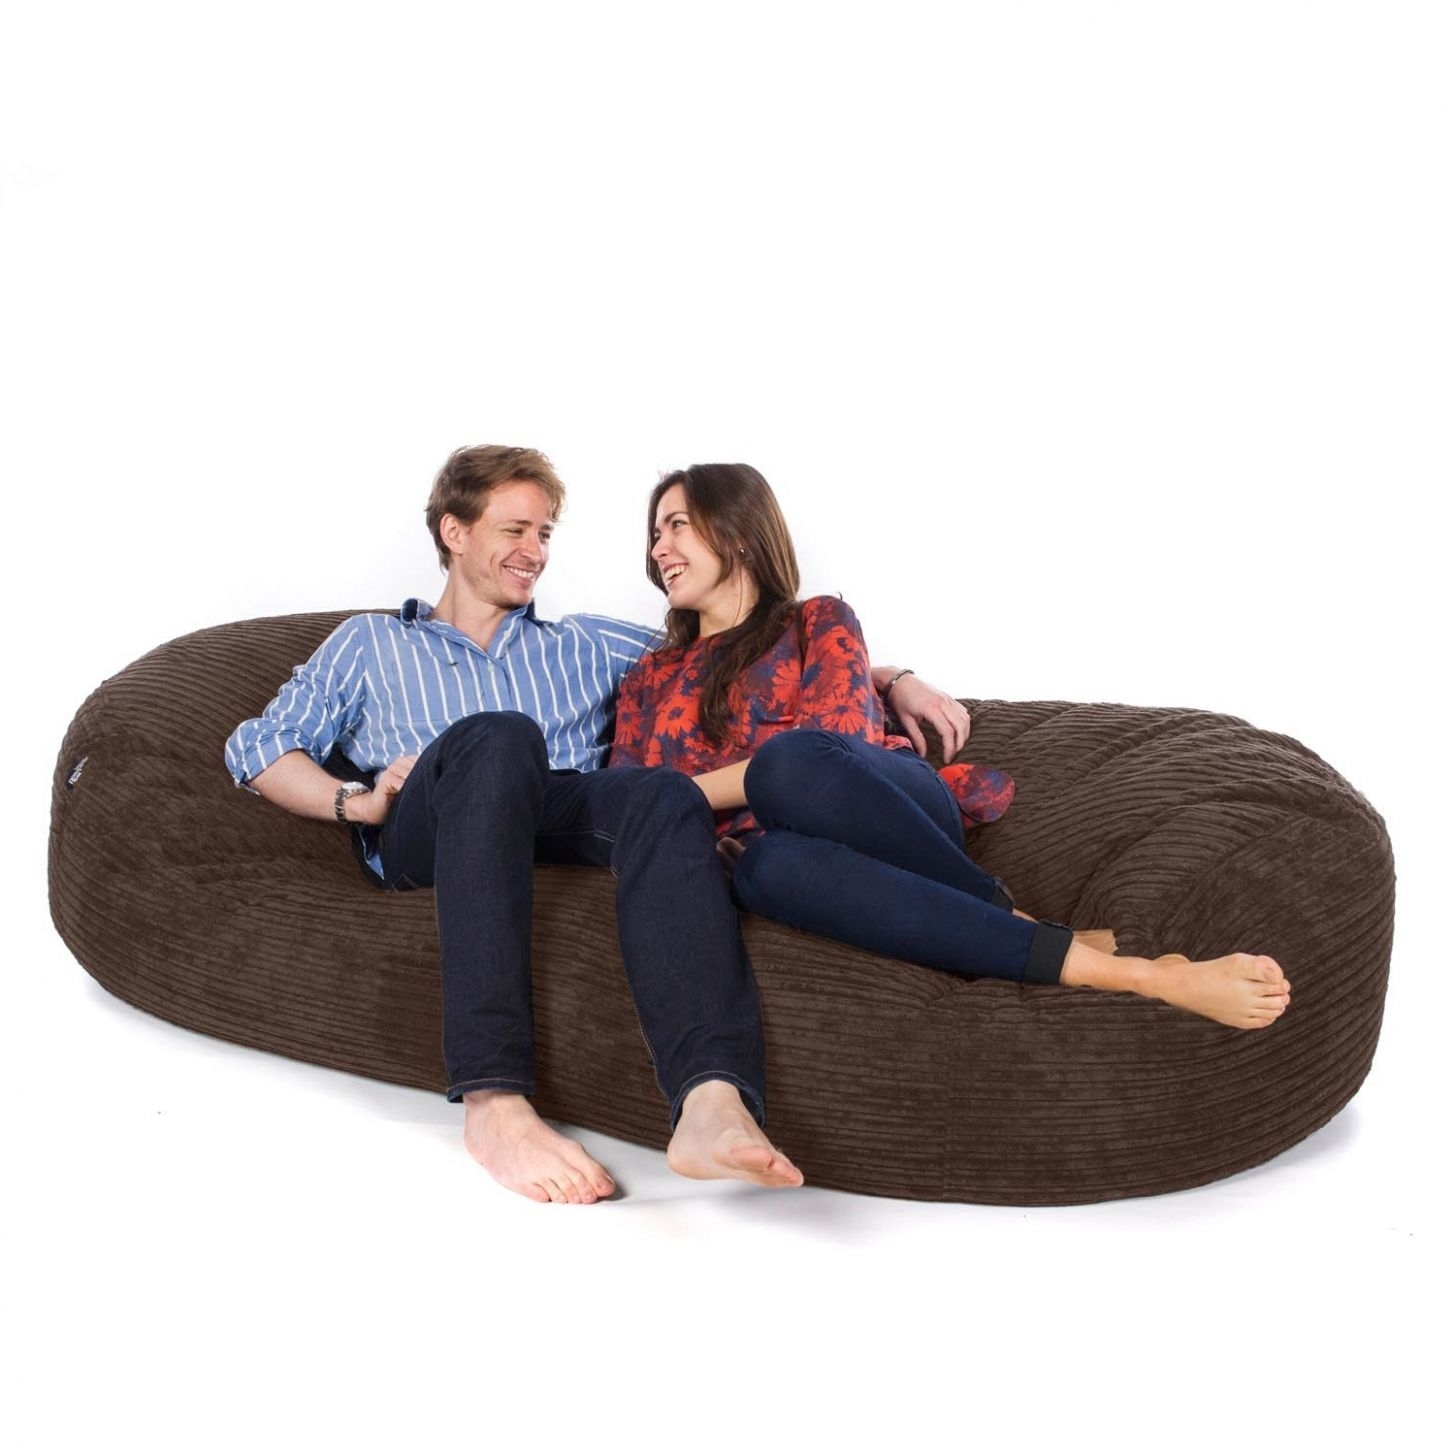 Awesome Corduroy Bean Bag Sofa Photo #1 Great Bean Bags | Mytatuaggi Within Bean Bag Sofas (View 9 of 10)